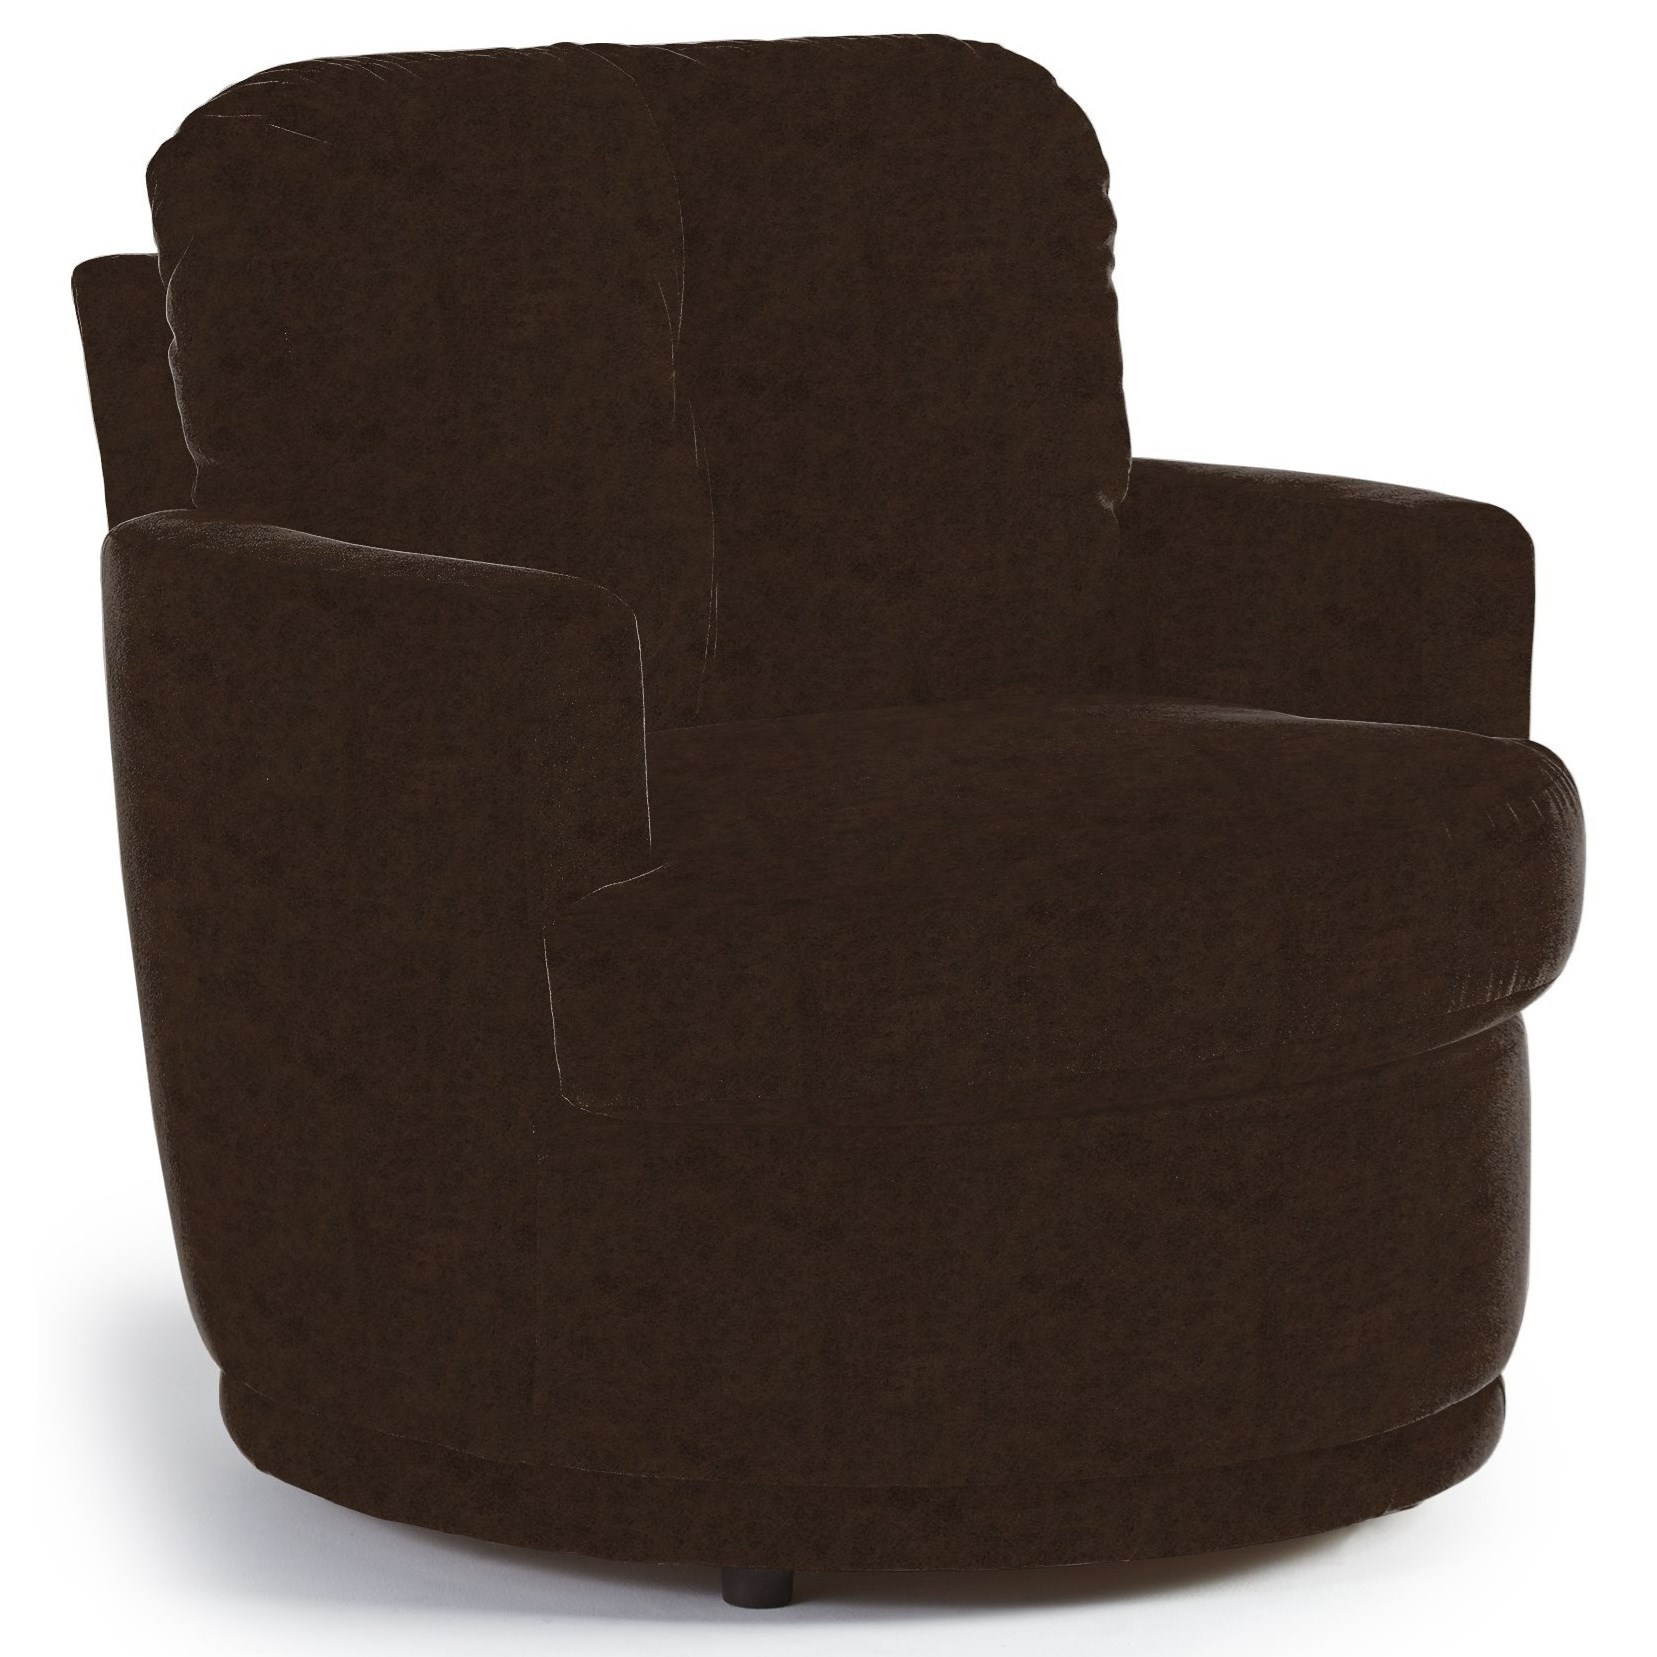 Chairs - Swivel Barrel Swivel Chair by Best Home Furnishings at Lucas Furniture & Mattress